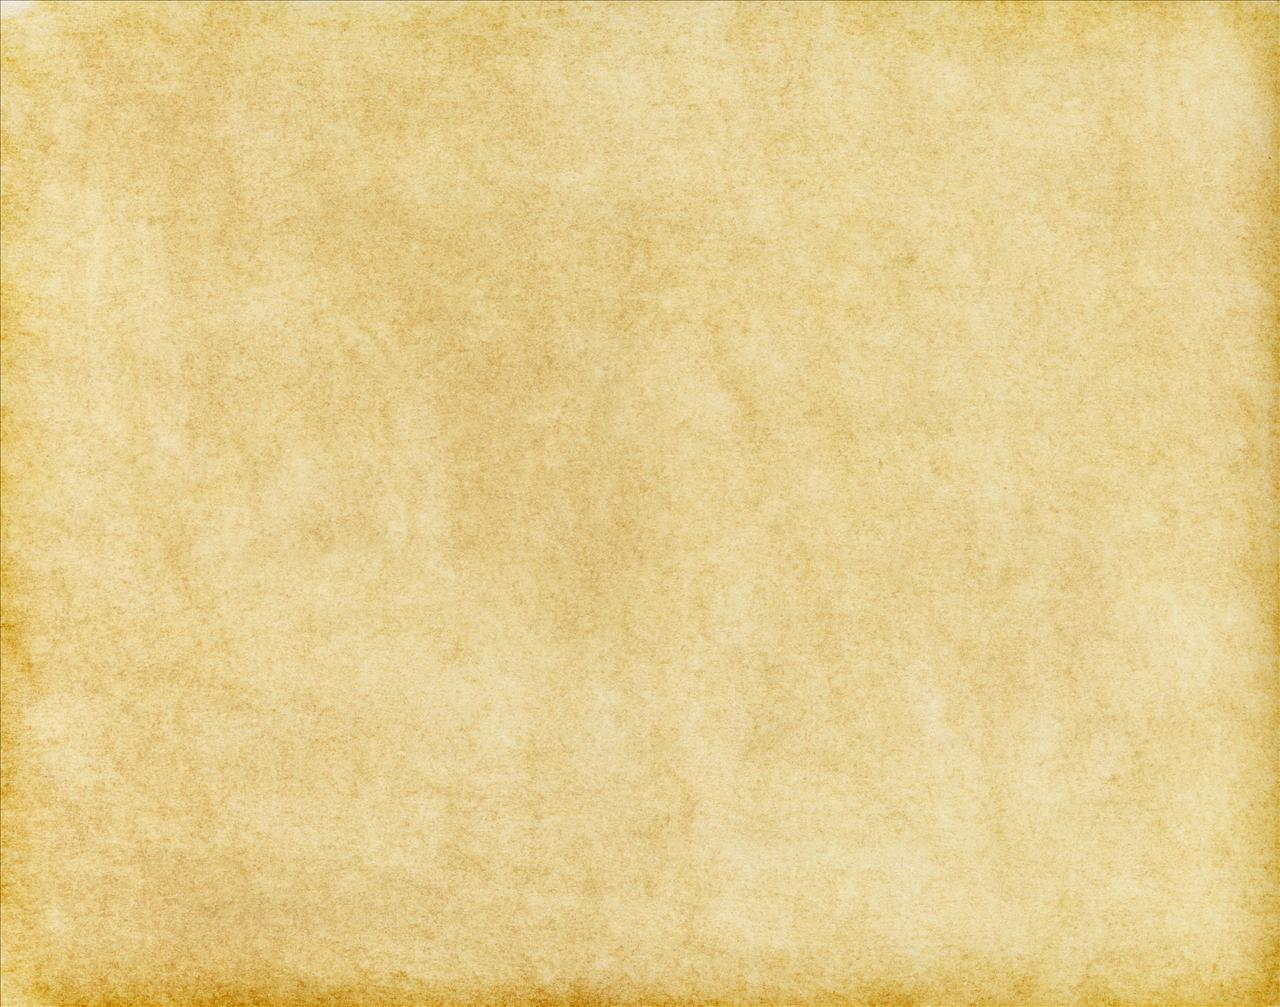 Warm Paper autumn Backgrounds